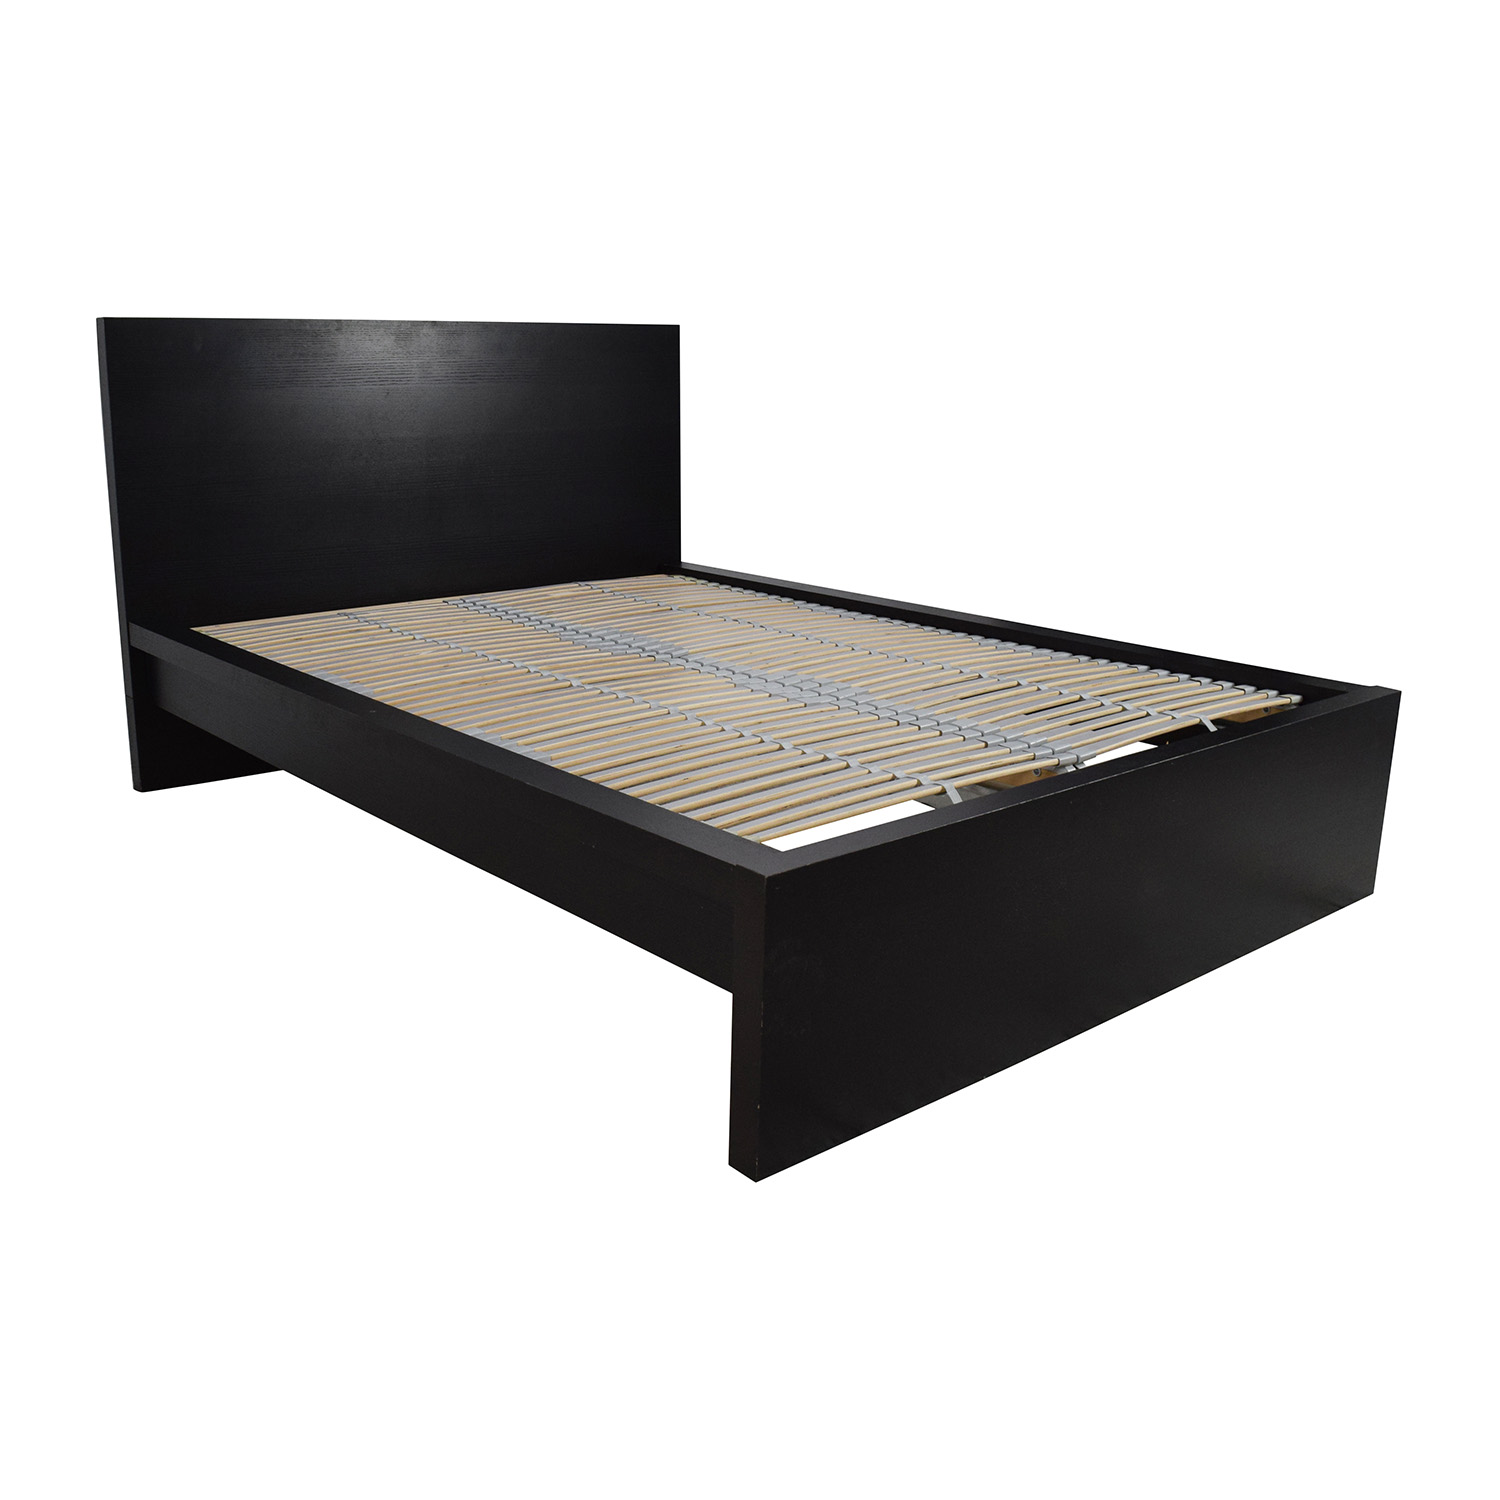 77% OFF - IKEA IKEA Full Bed Frame with Adjustable Slats / Beds